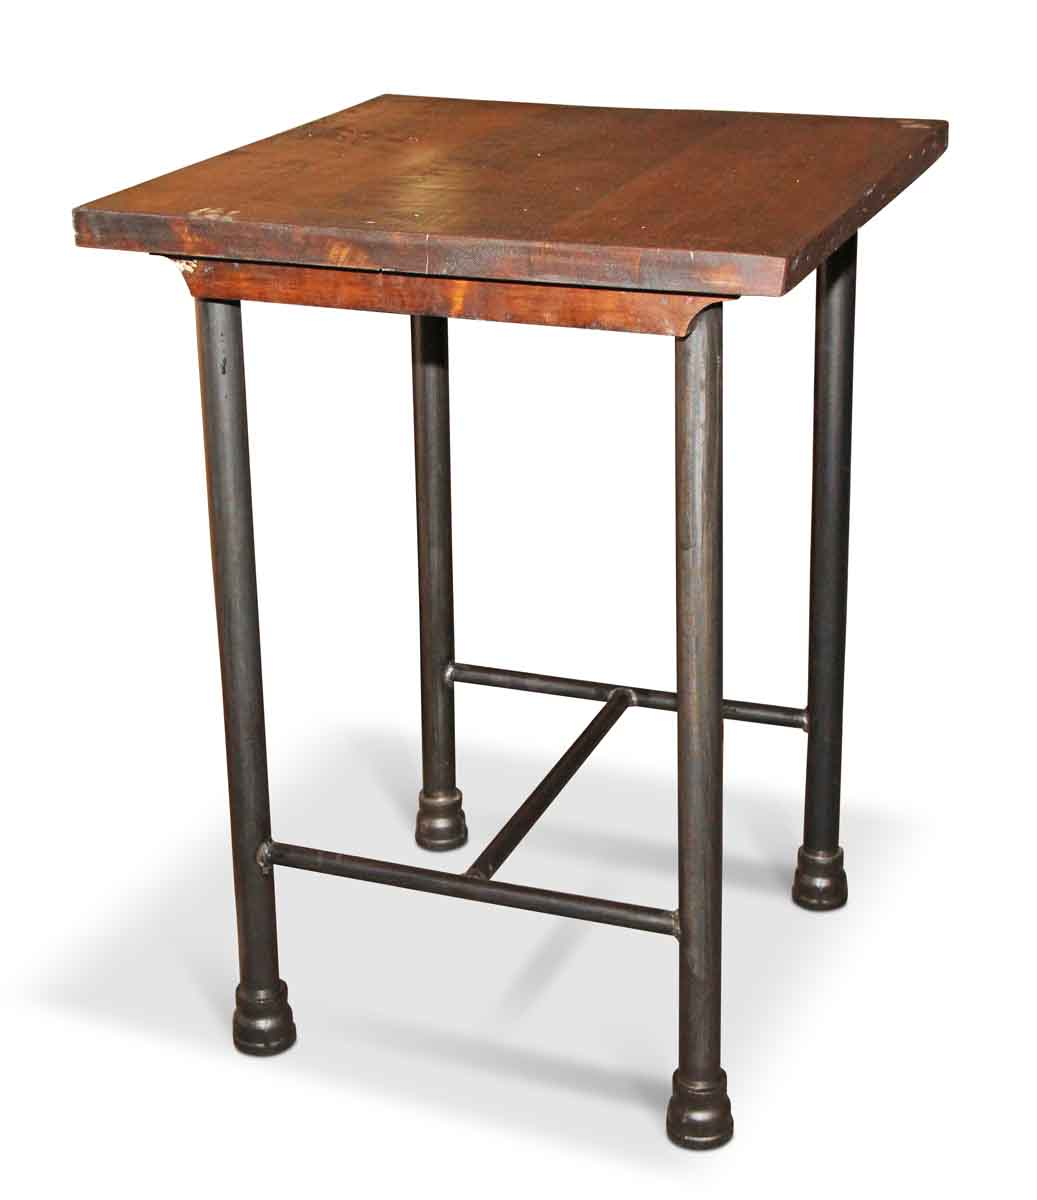 Square kitchen island or tall side table olde good things for Square side table